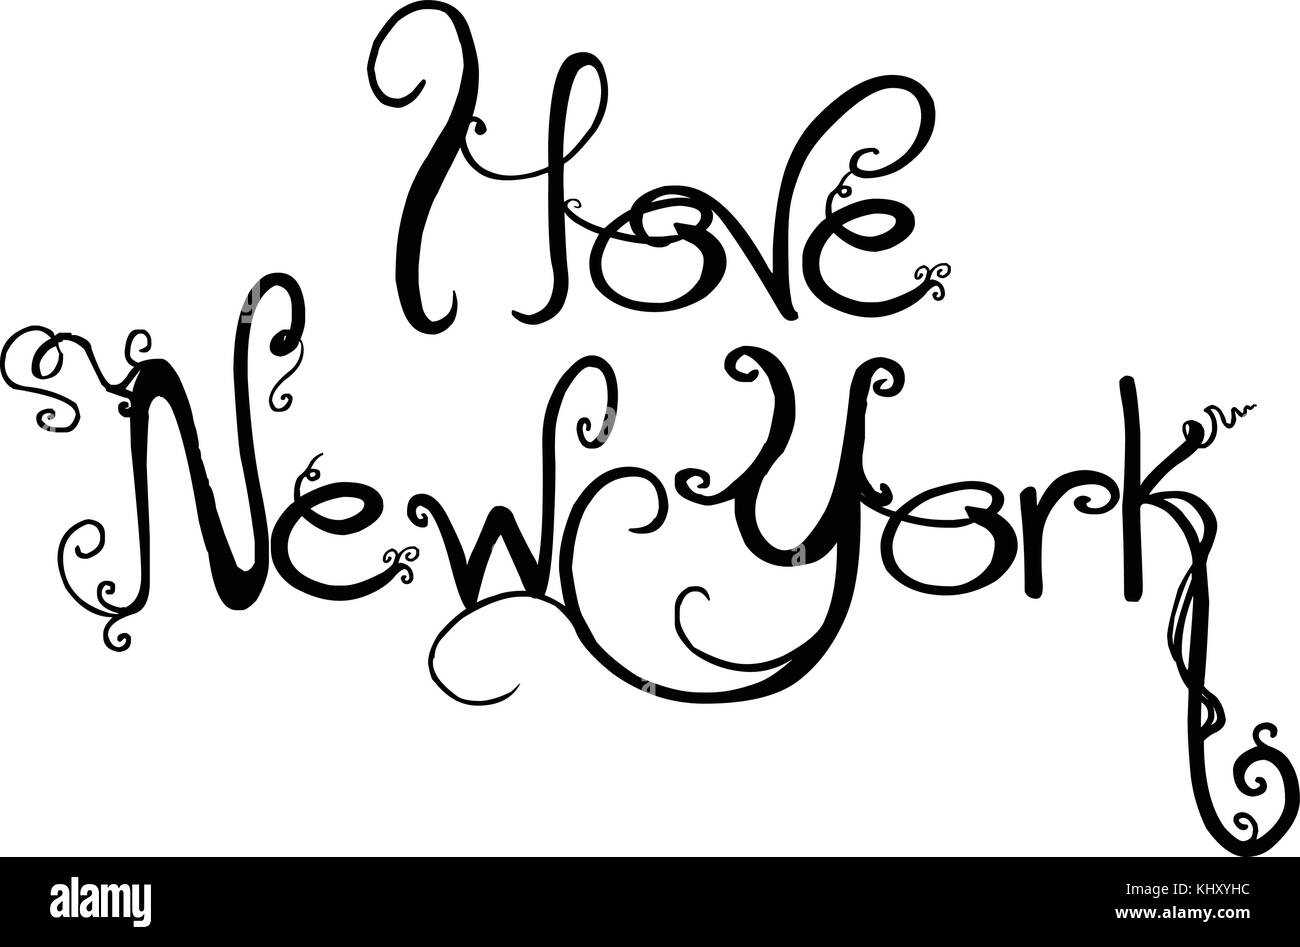 I Love New York text sign isolated on white Background. - Stock Image